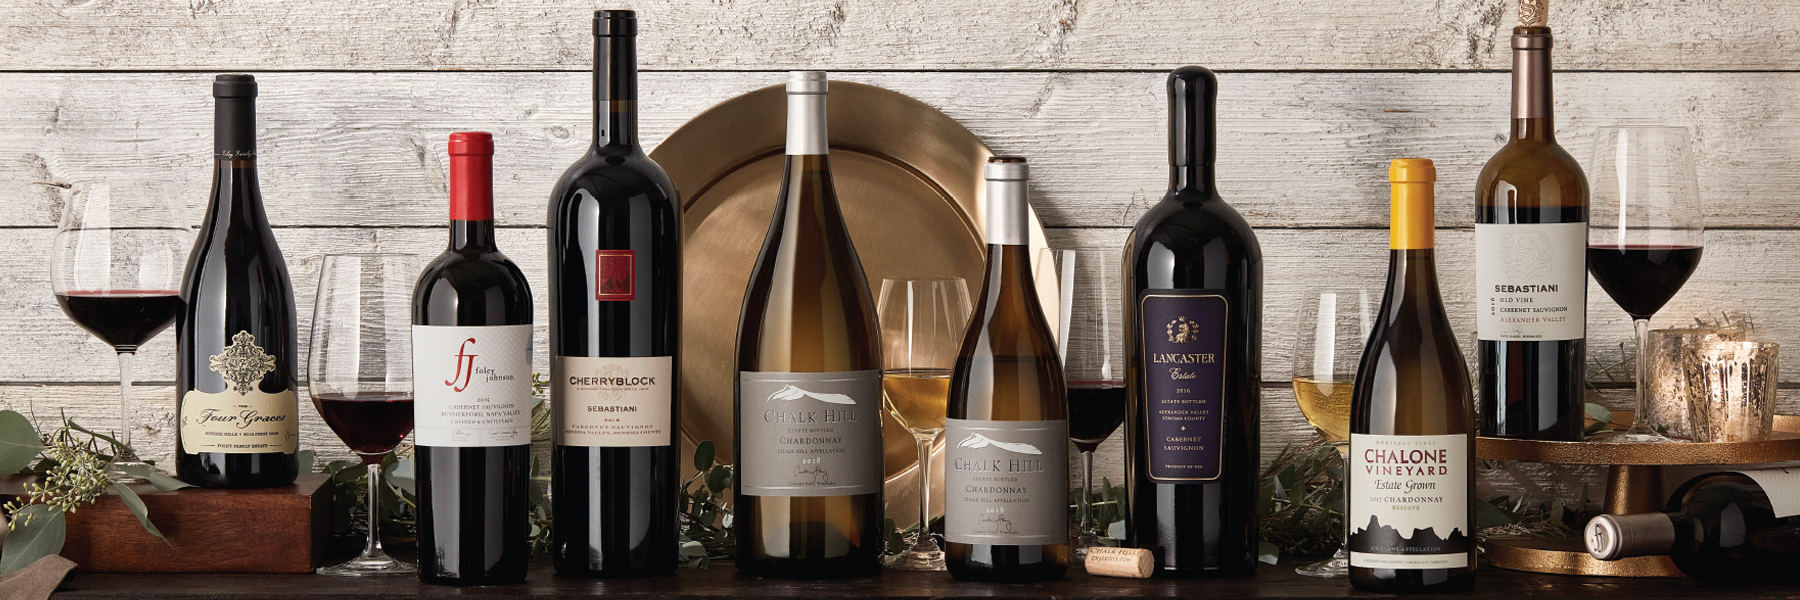 Holiday Lineup of Foley Family Wines Wine Bottles